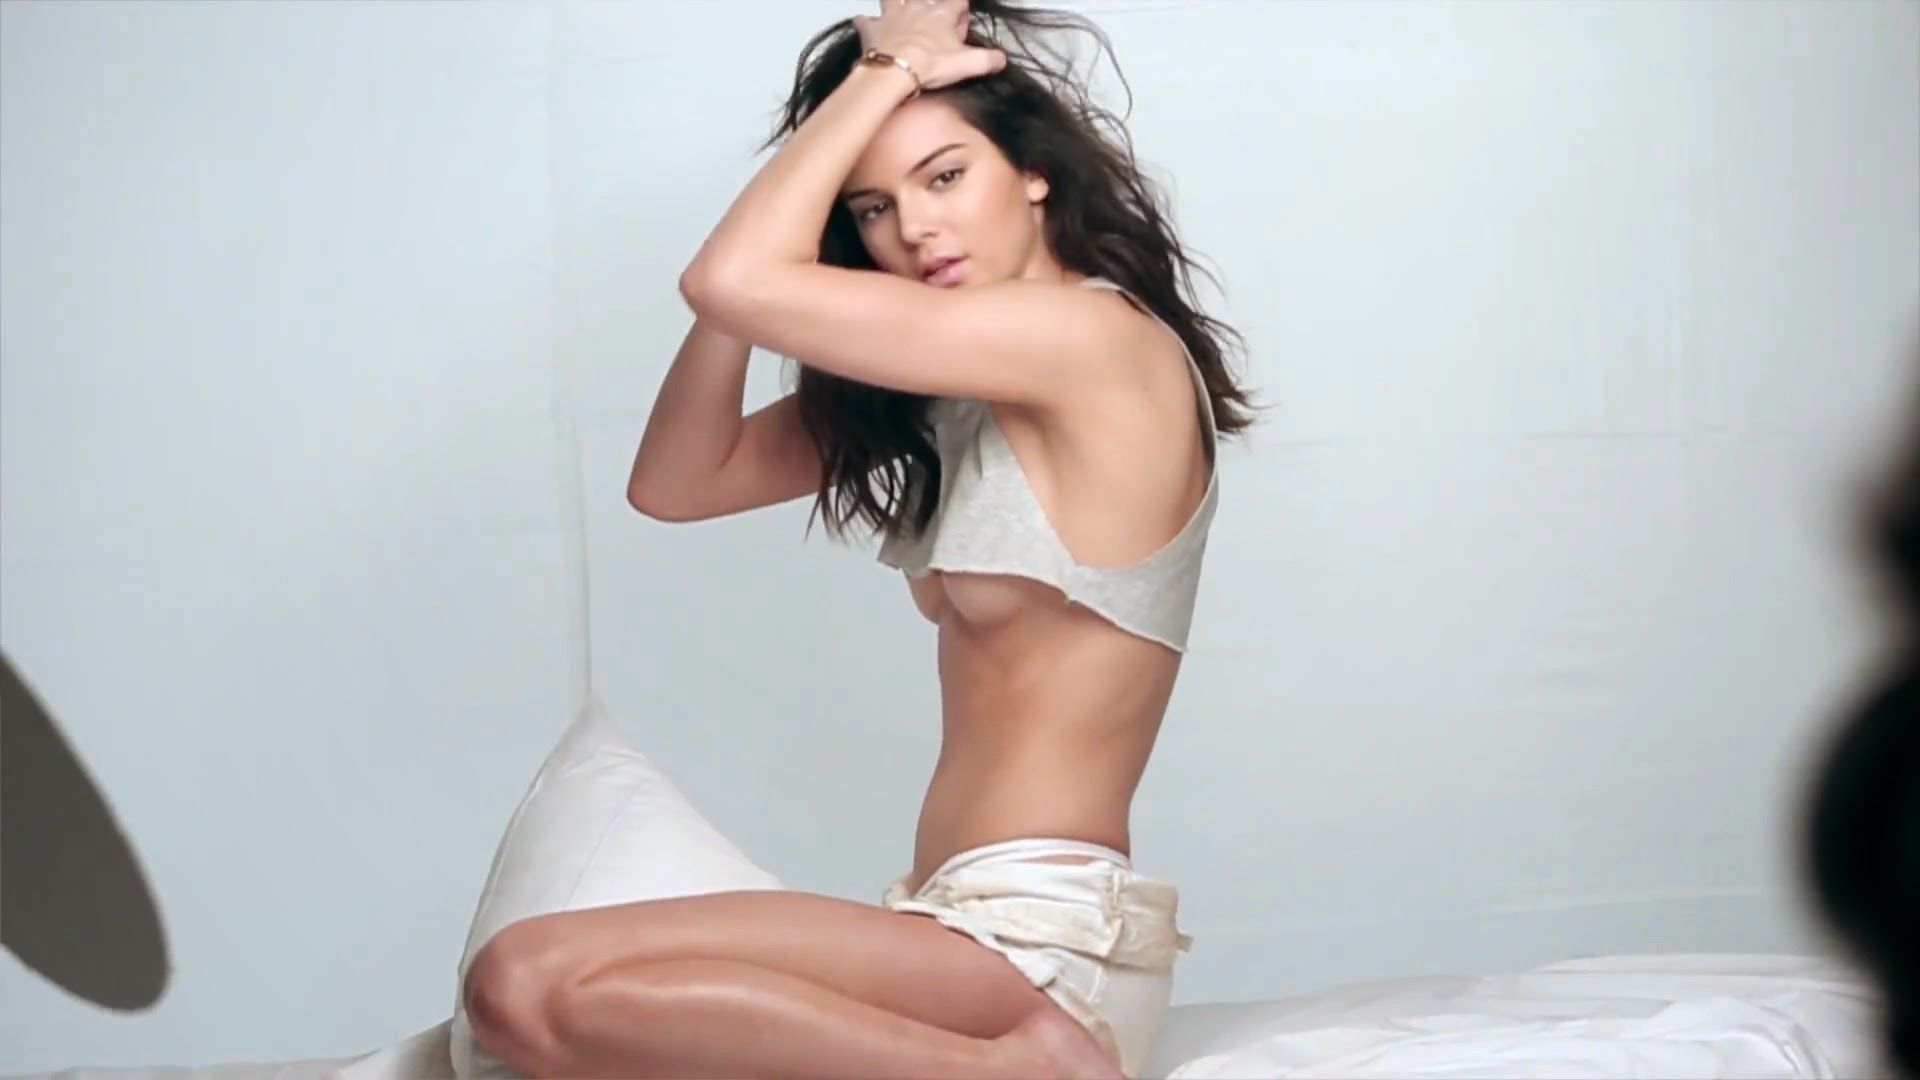 kendall jenner nude - photo #19